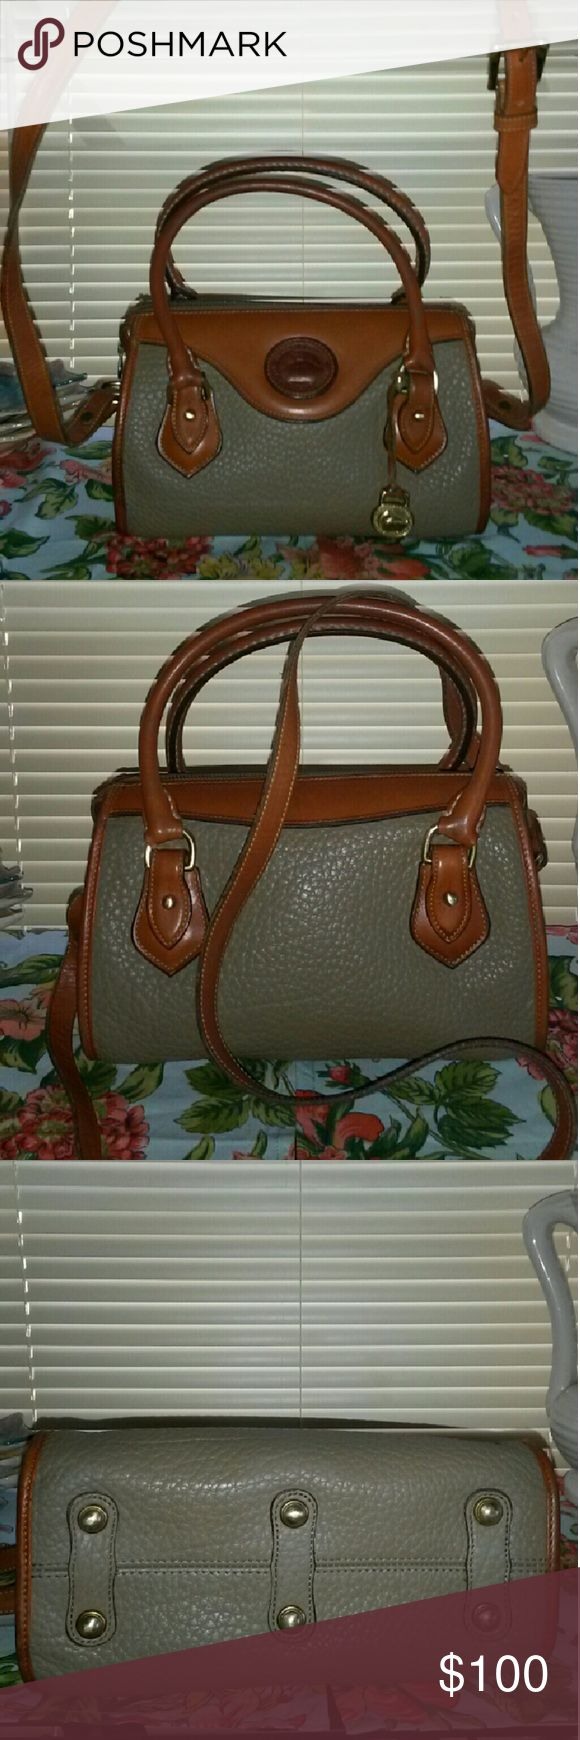 DOONEY BOURKE VINTAGE SATCHEL GORGEOUS Dooney & Bourke magnificent condition medium size  satchel. No spots, stains, or scuffs to outside. Very minor rubs on 2 corners dissappeared w conditioning! Inside has tiny ink mark pictured, very tiny. Rest of inside perfect. This bag holds alot of essentials for her med sz. It is 9.5 wide x 7in tall and 4.5 depth. Adjustable Crossbody/ shoulder strap, drop is 23in long. The british tan on bag and small handles is perfect color!, bottom w brass feet…